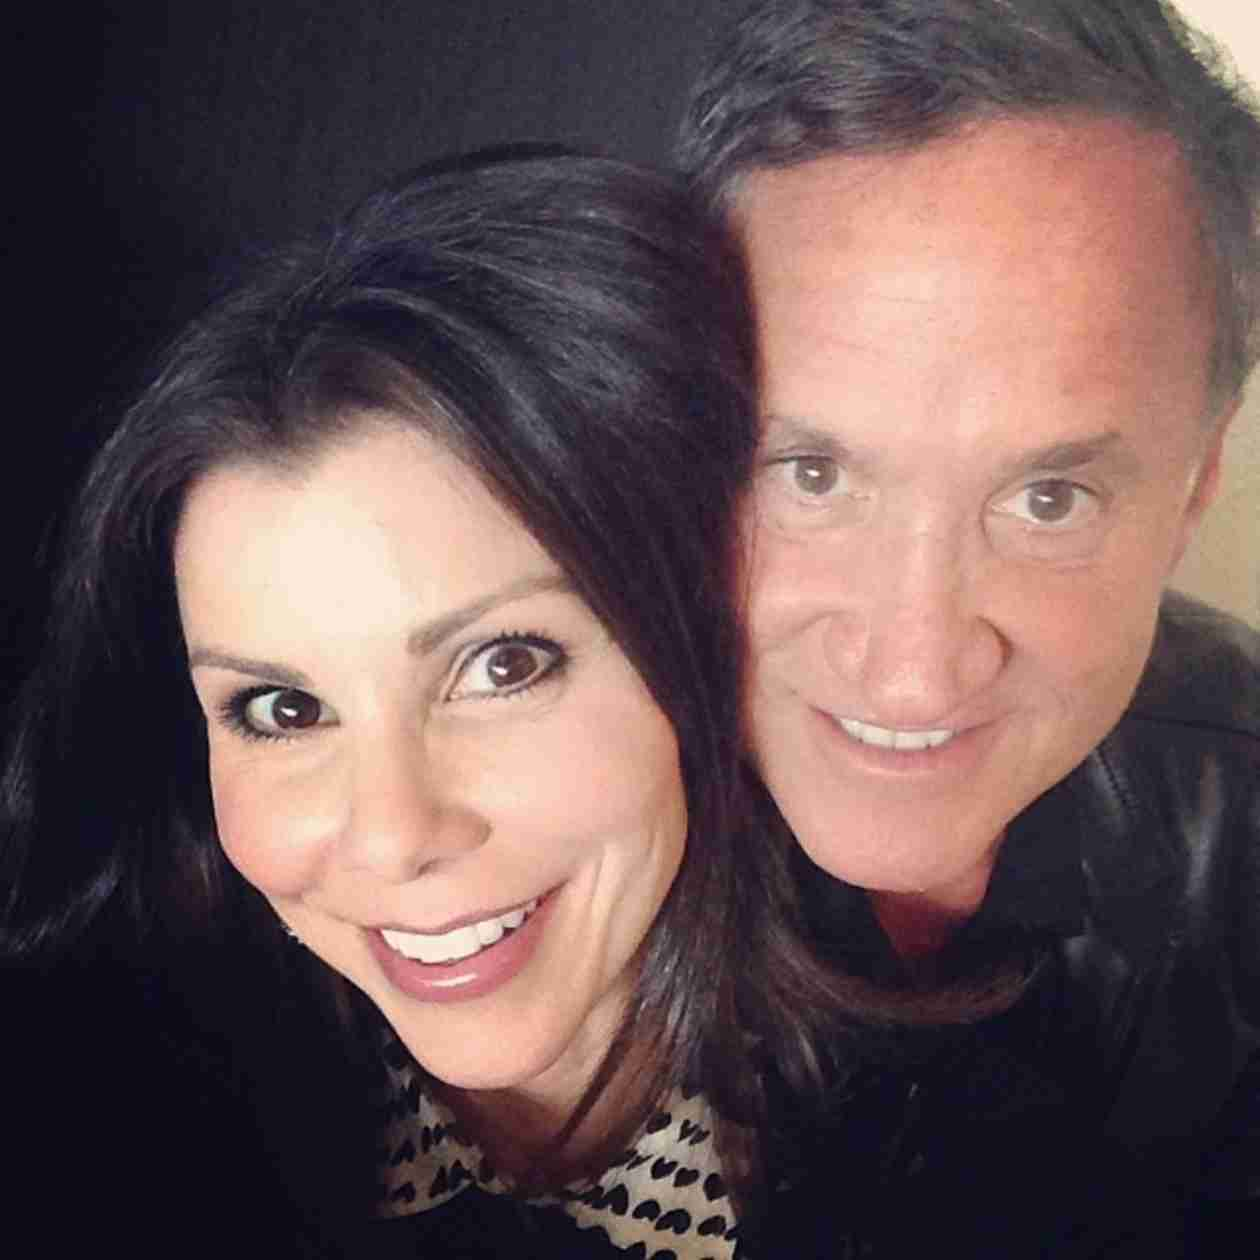 Has Heather Dubrow Had Any Plastic Surgery Done Lately? She Says… (VIDEO)